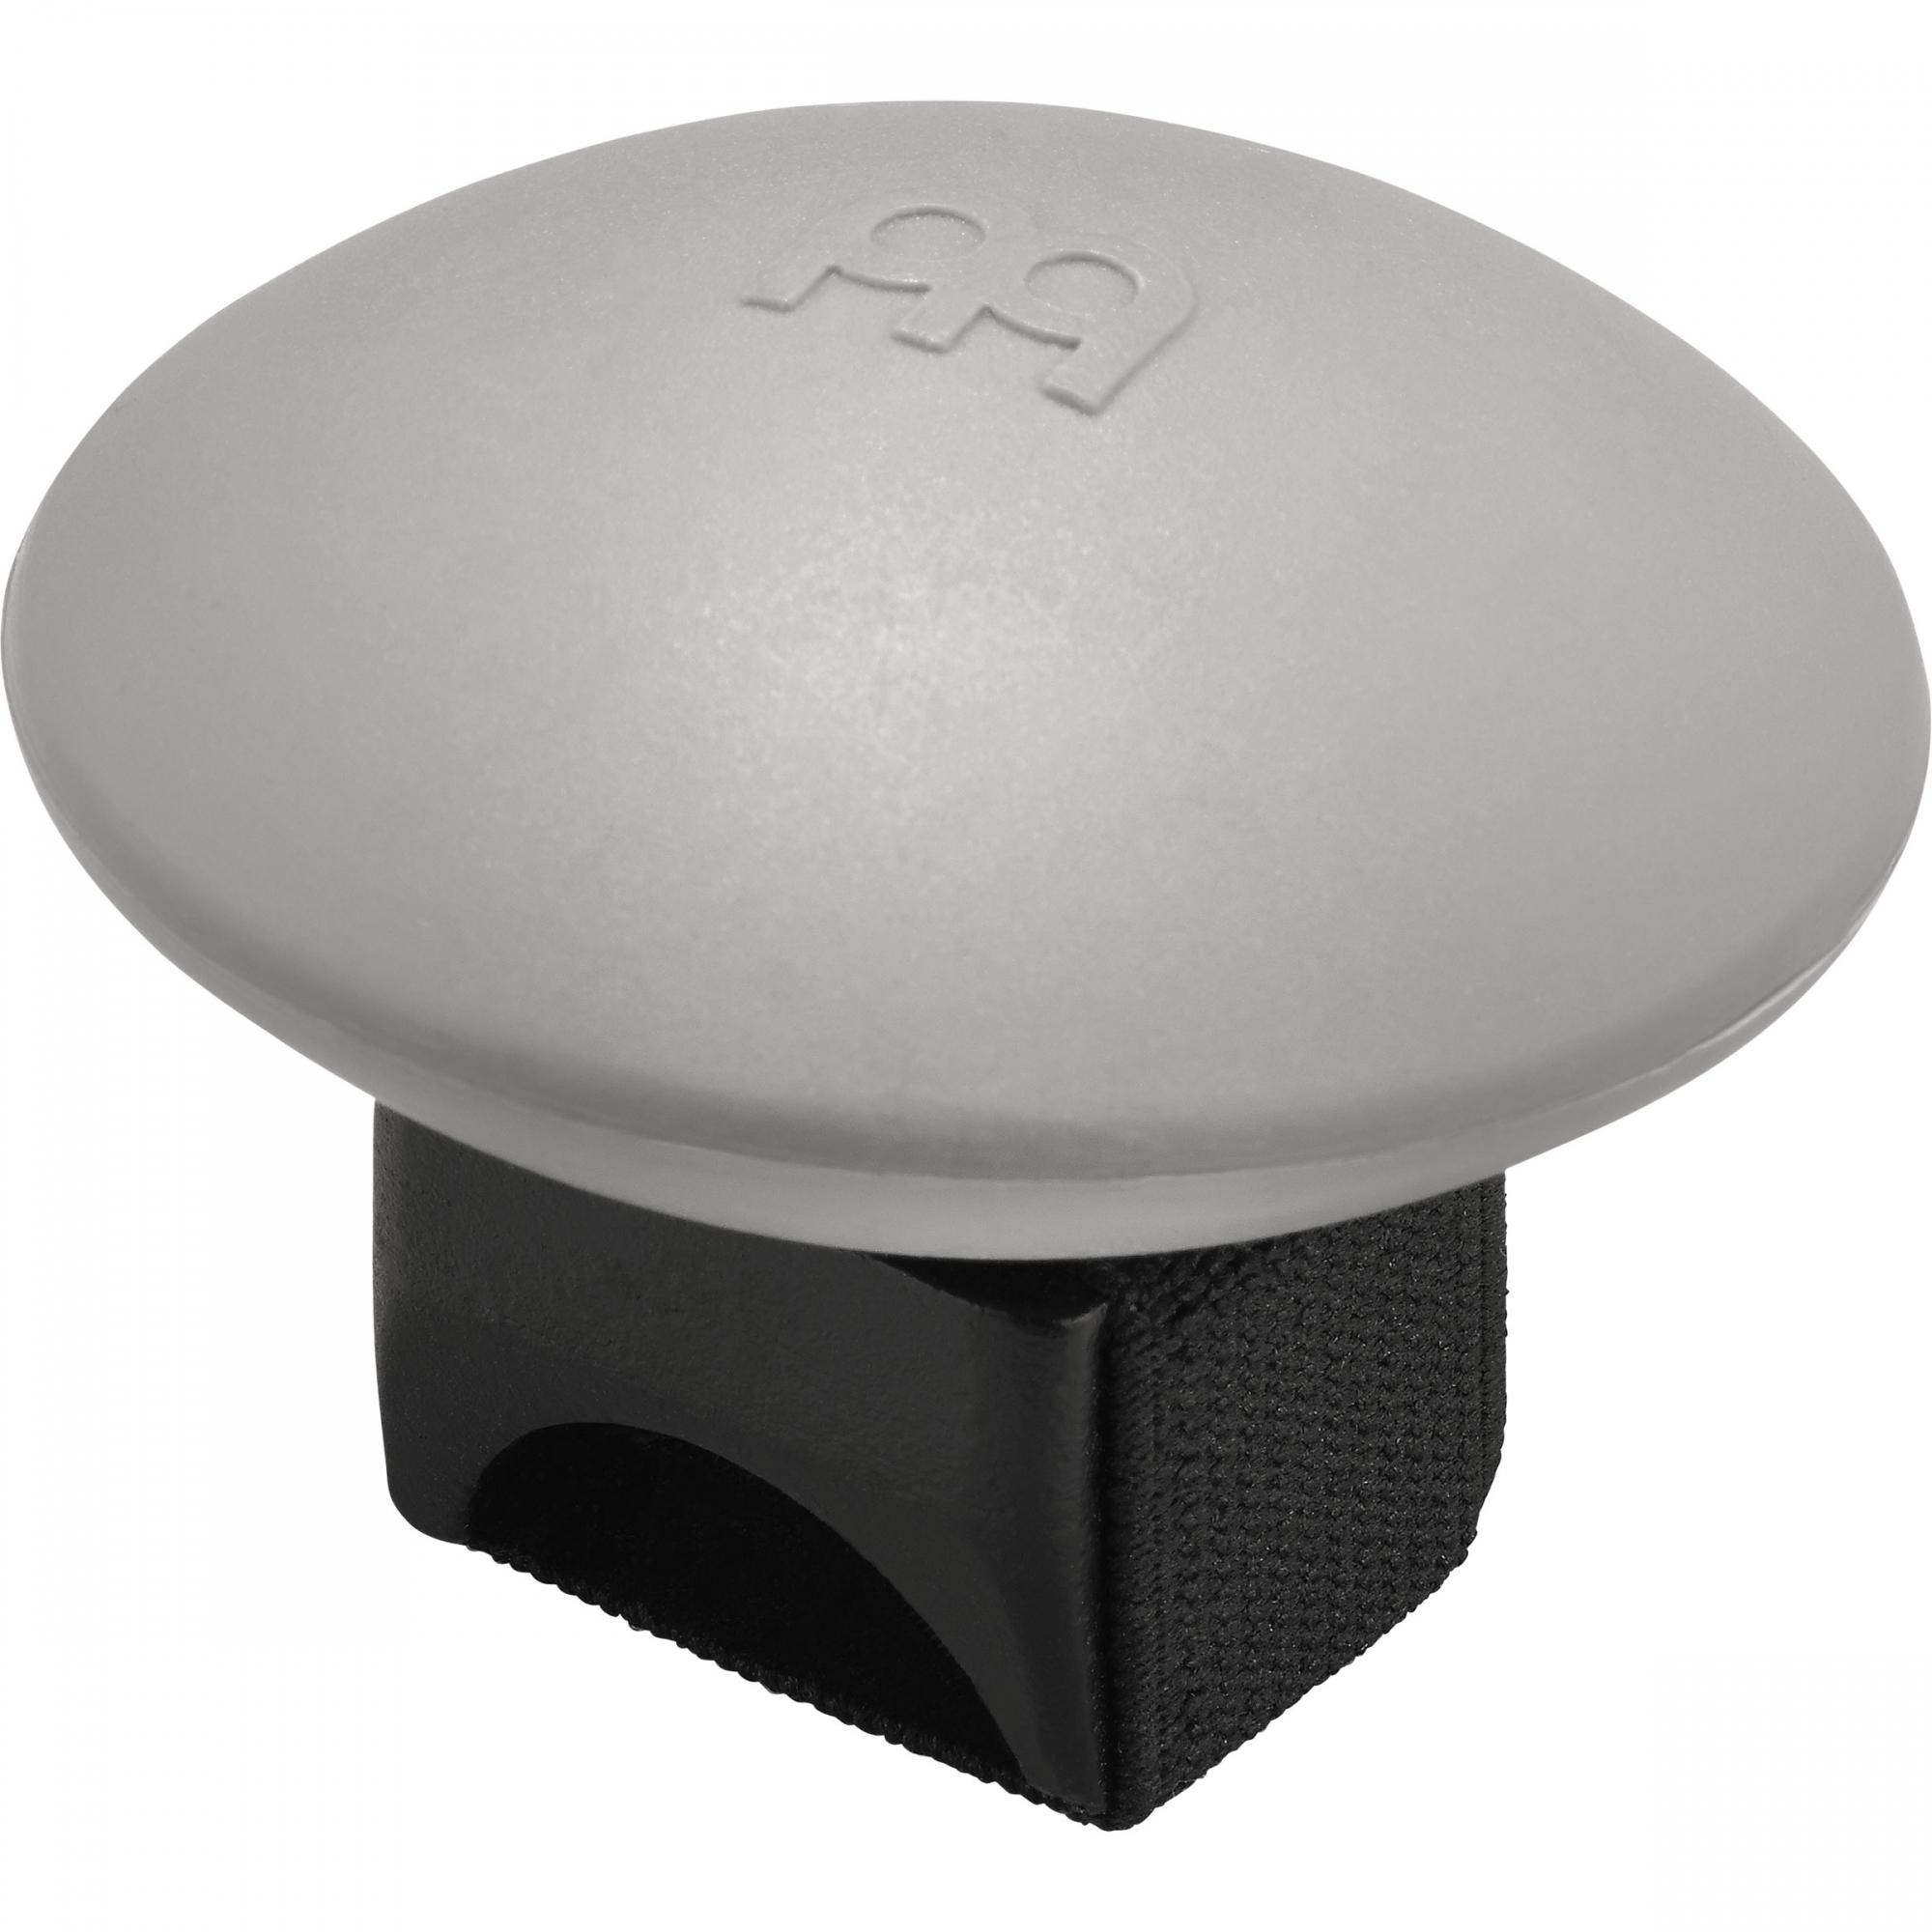 Image of   Meinl Motion Shaker Grå